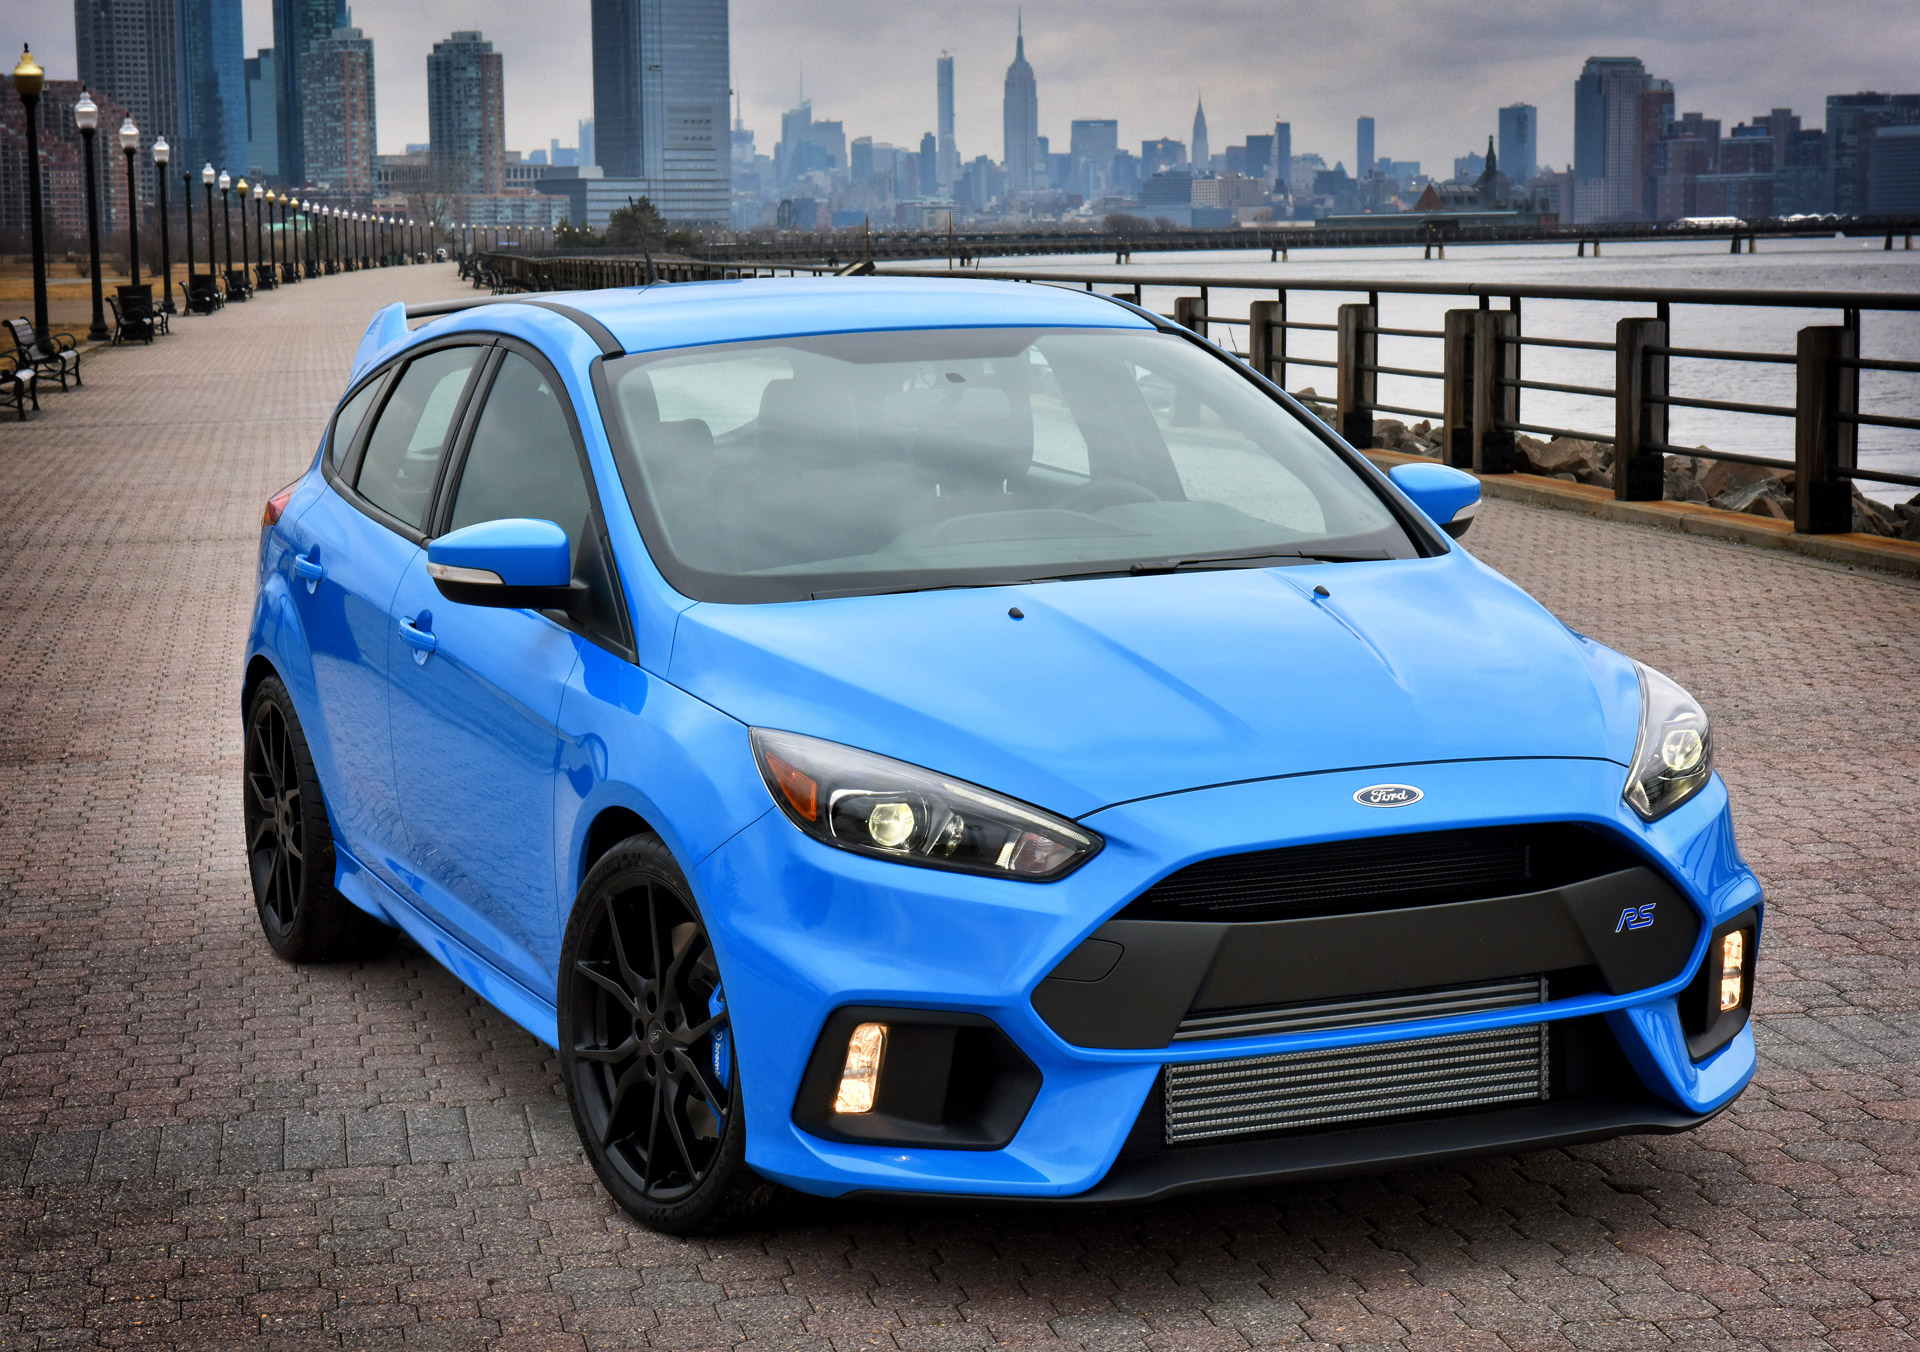 review australia focus rs australian price ford all images gizmodo